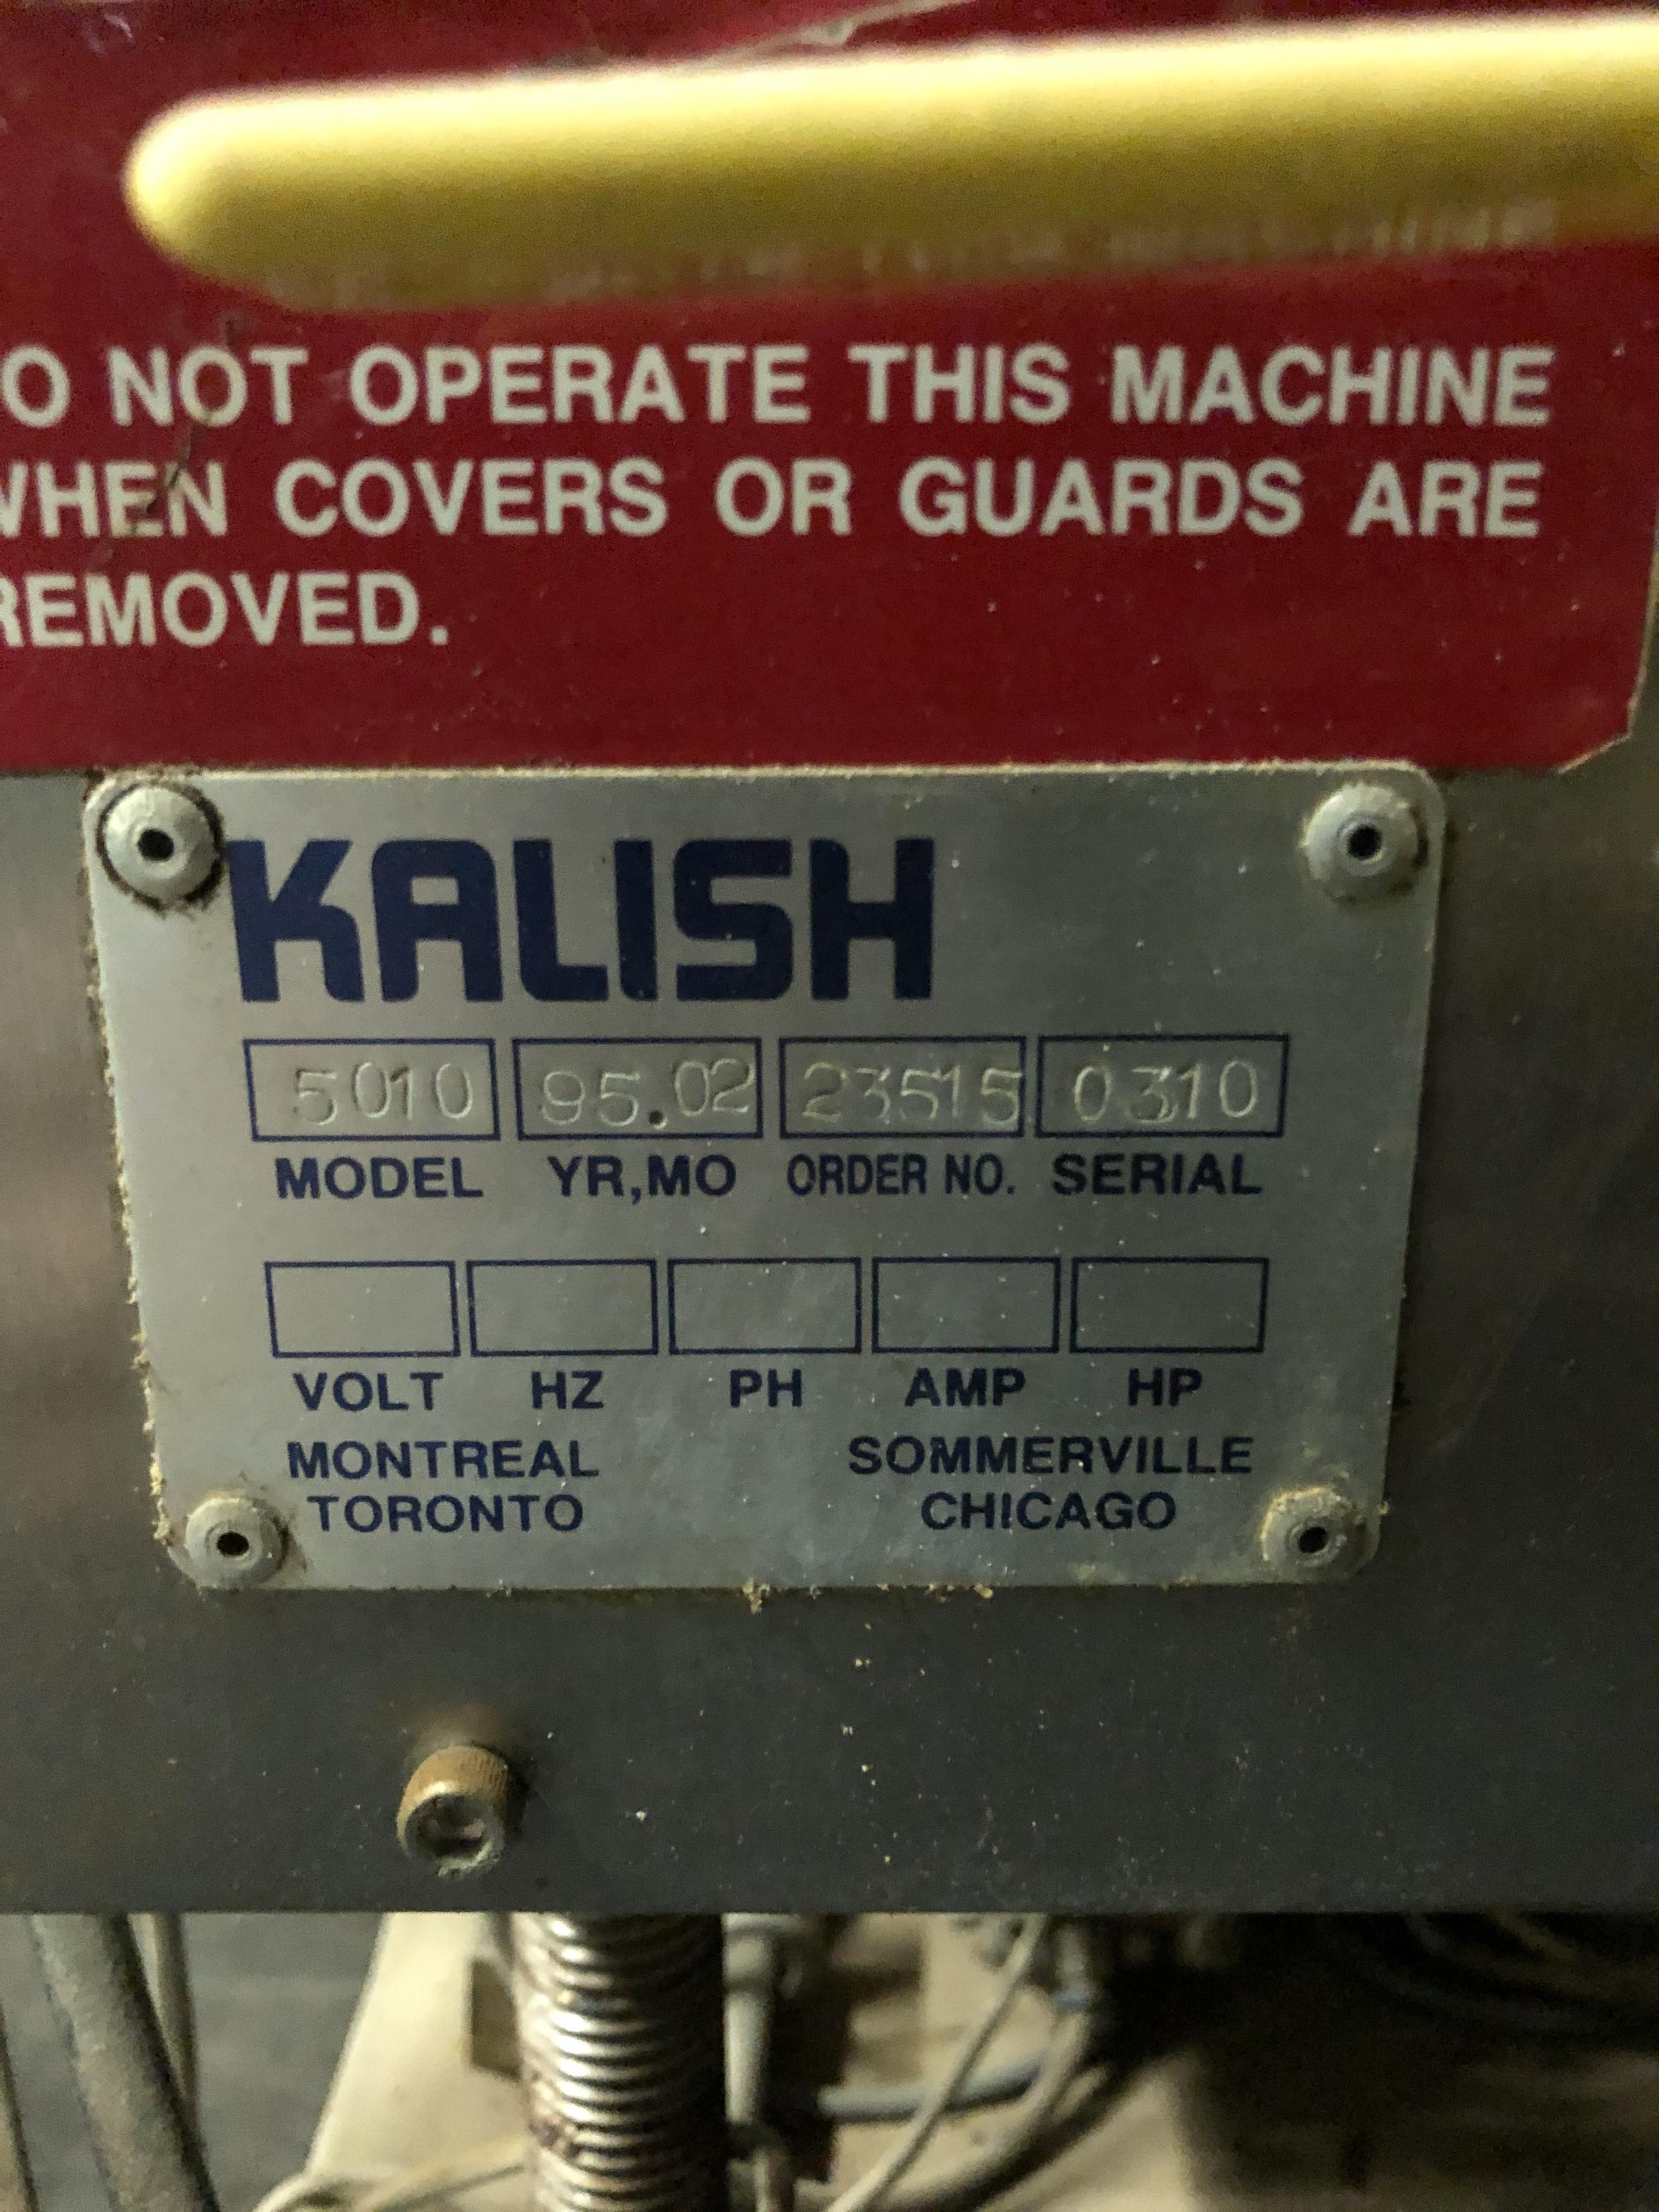 Kalish Model #5010 Supercap Capper, SN 0310, Includes Conveyor Feed, RIGGING FEE $450 - Image 3 of 6